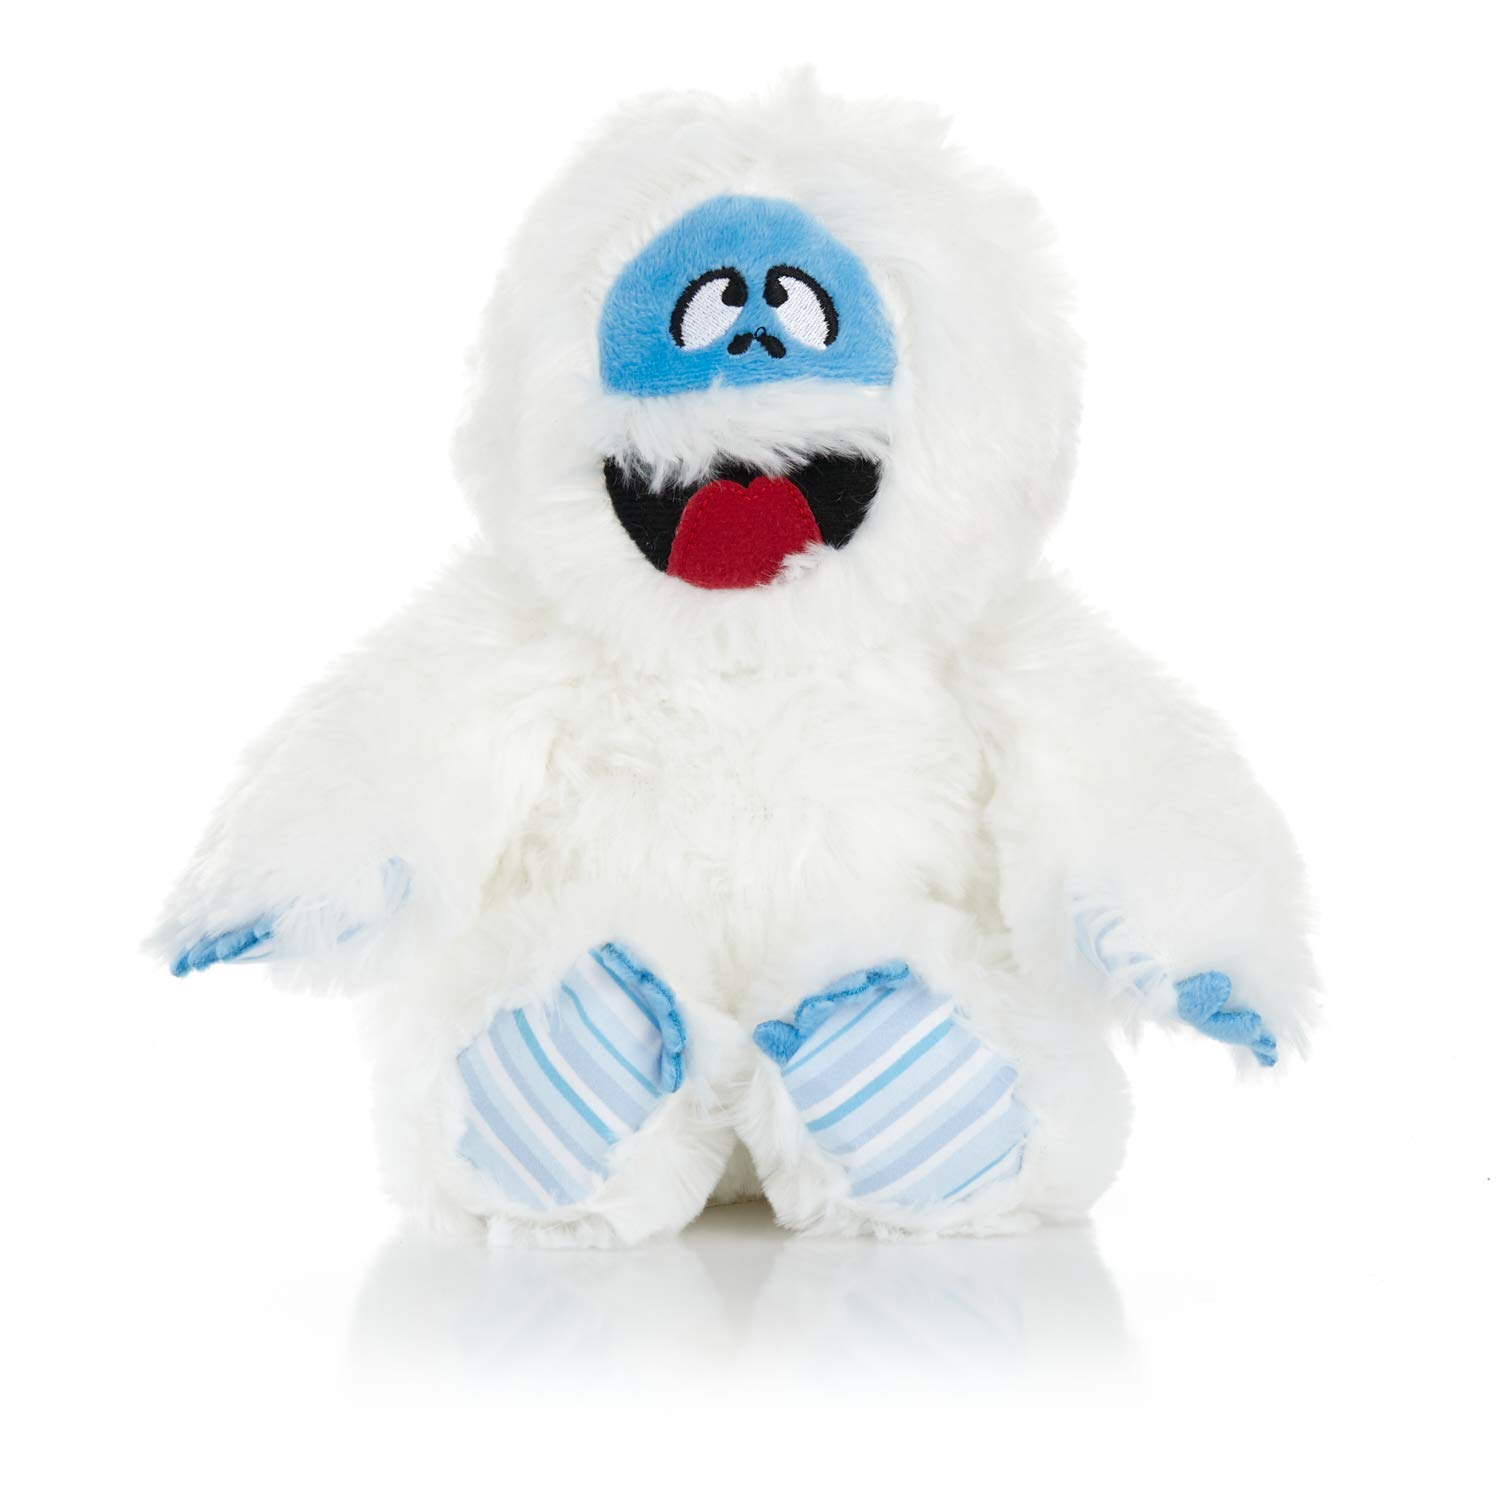 Image of Fun Abominable Snow Monster Bumble Plush Toy